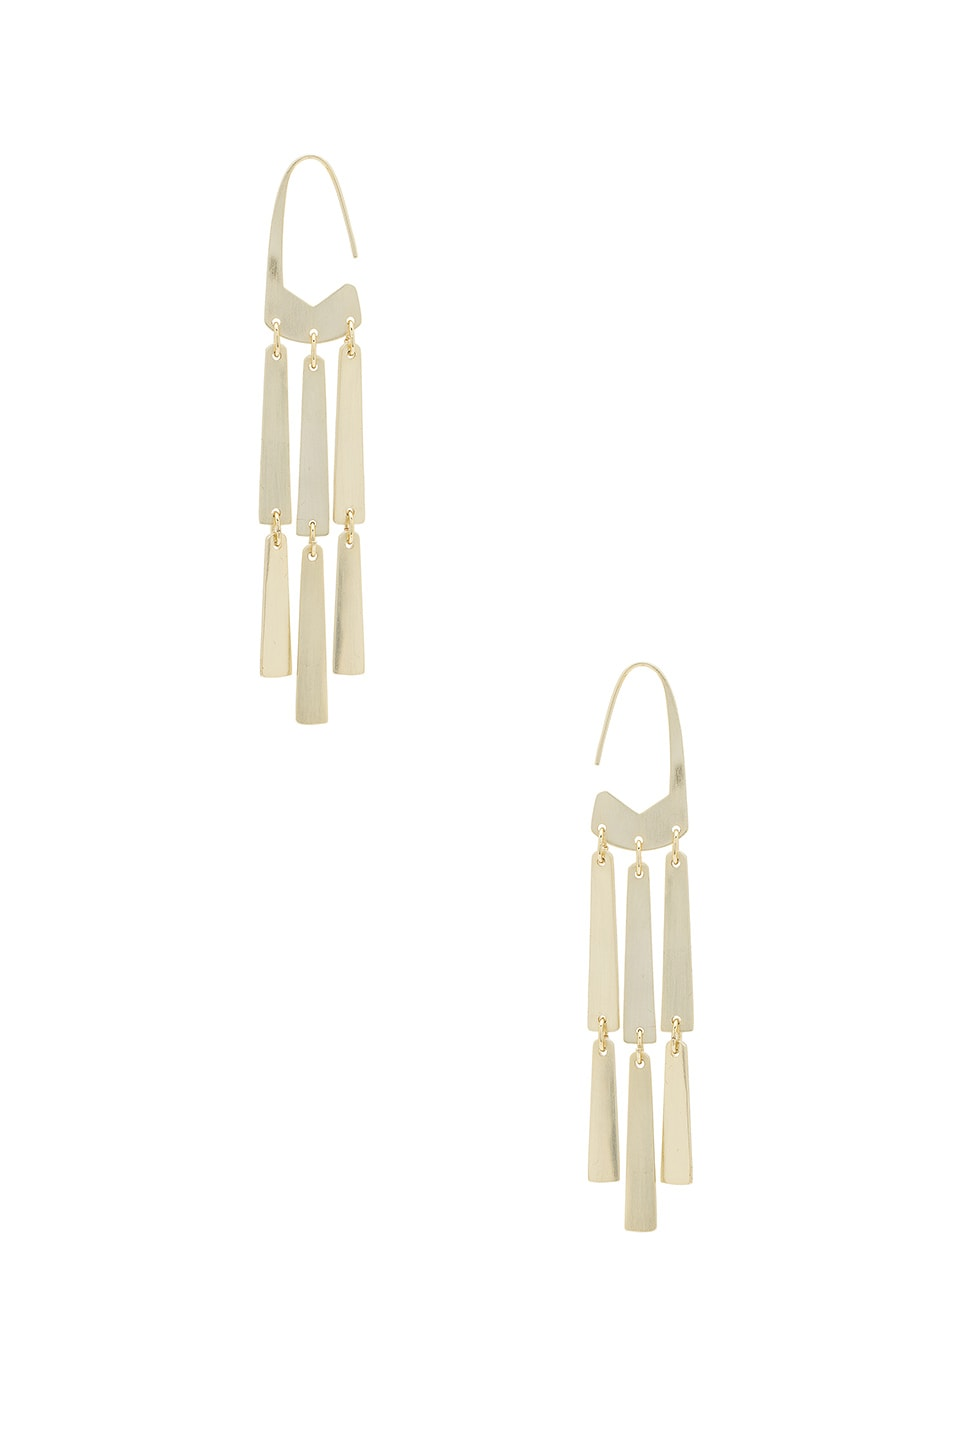 Kendra Scott Mallie Earrings in Gold